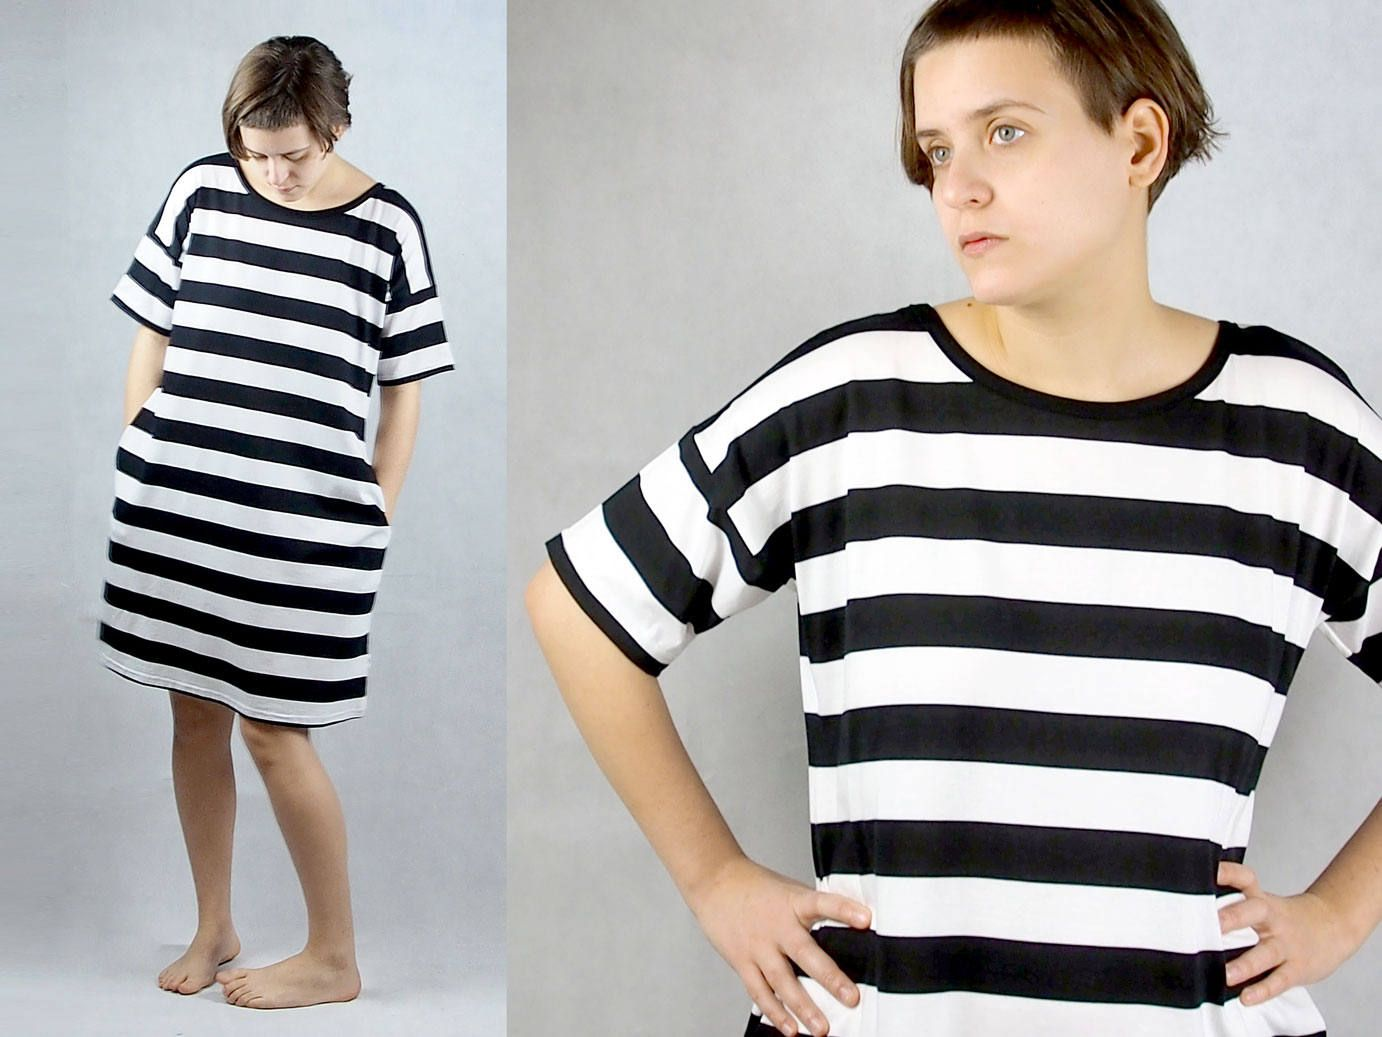 Black t shirt dress etsy - Tricot Dress With Pockets And Stripes Black And White Women S Clothing T Shirt Dress Cotton By Themotekshop On Etsy